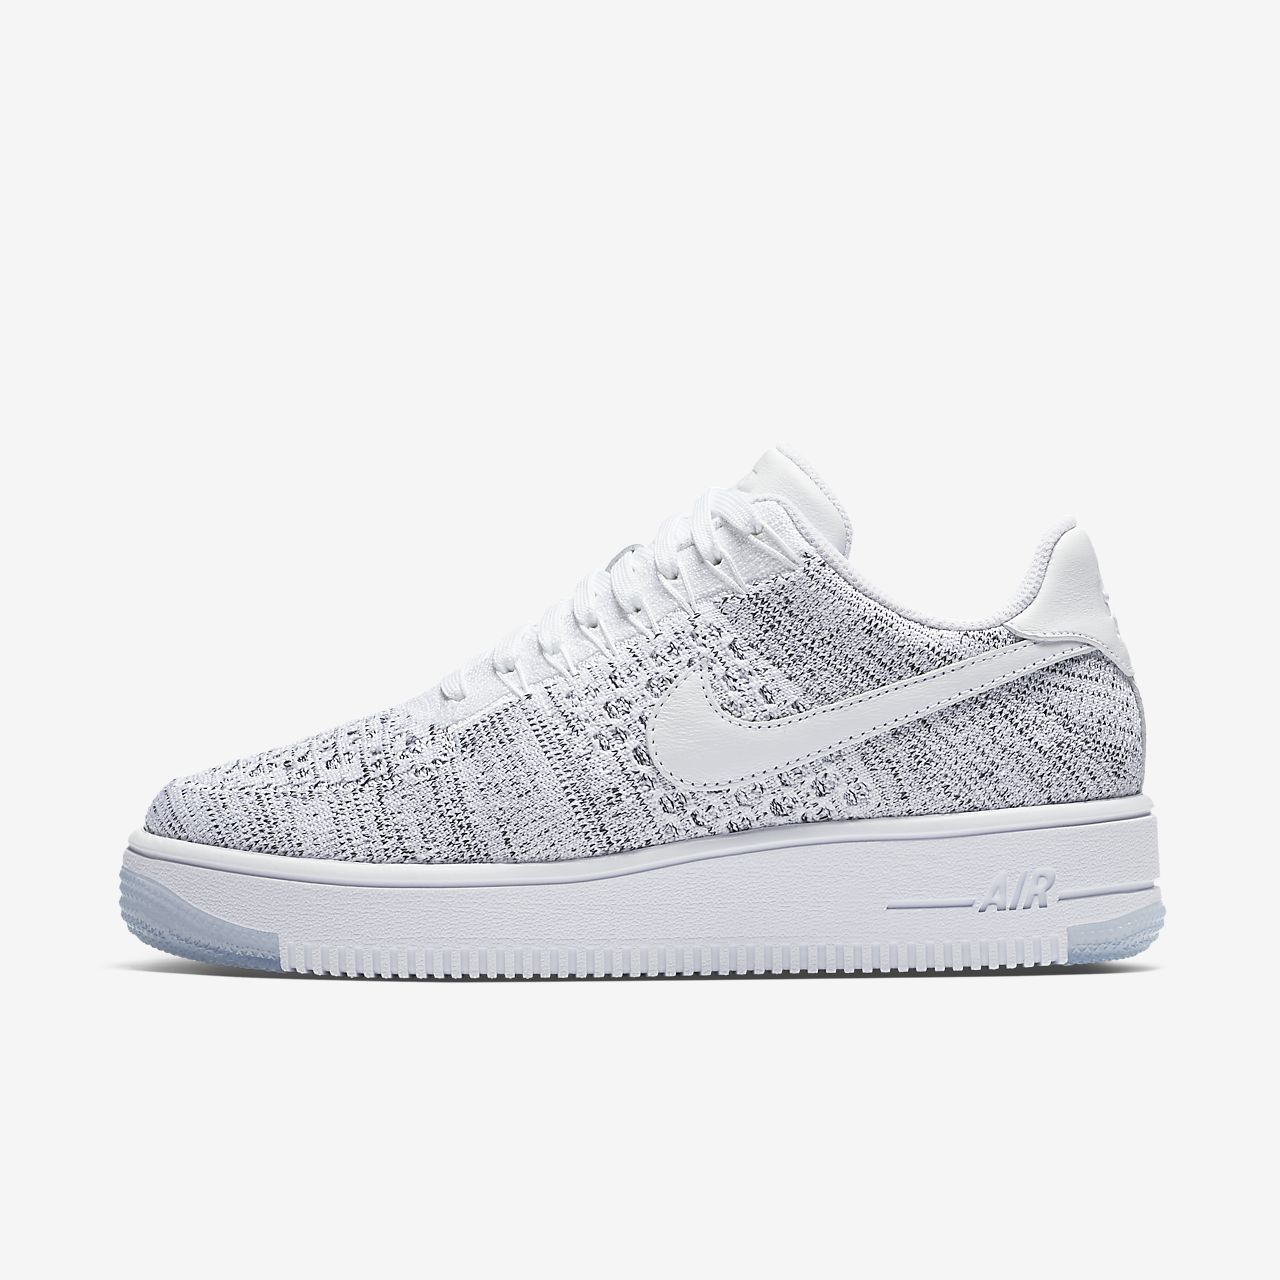 Nike Air Force 1 Flyknit Bas